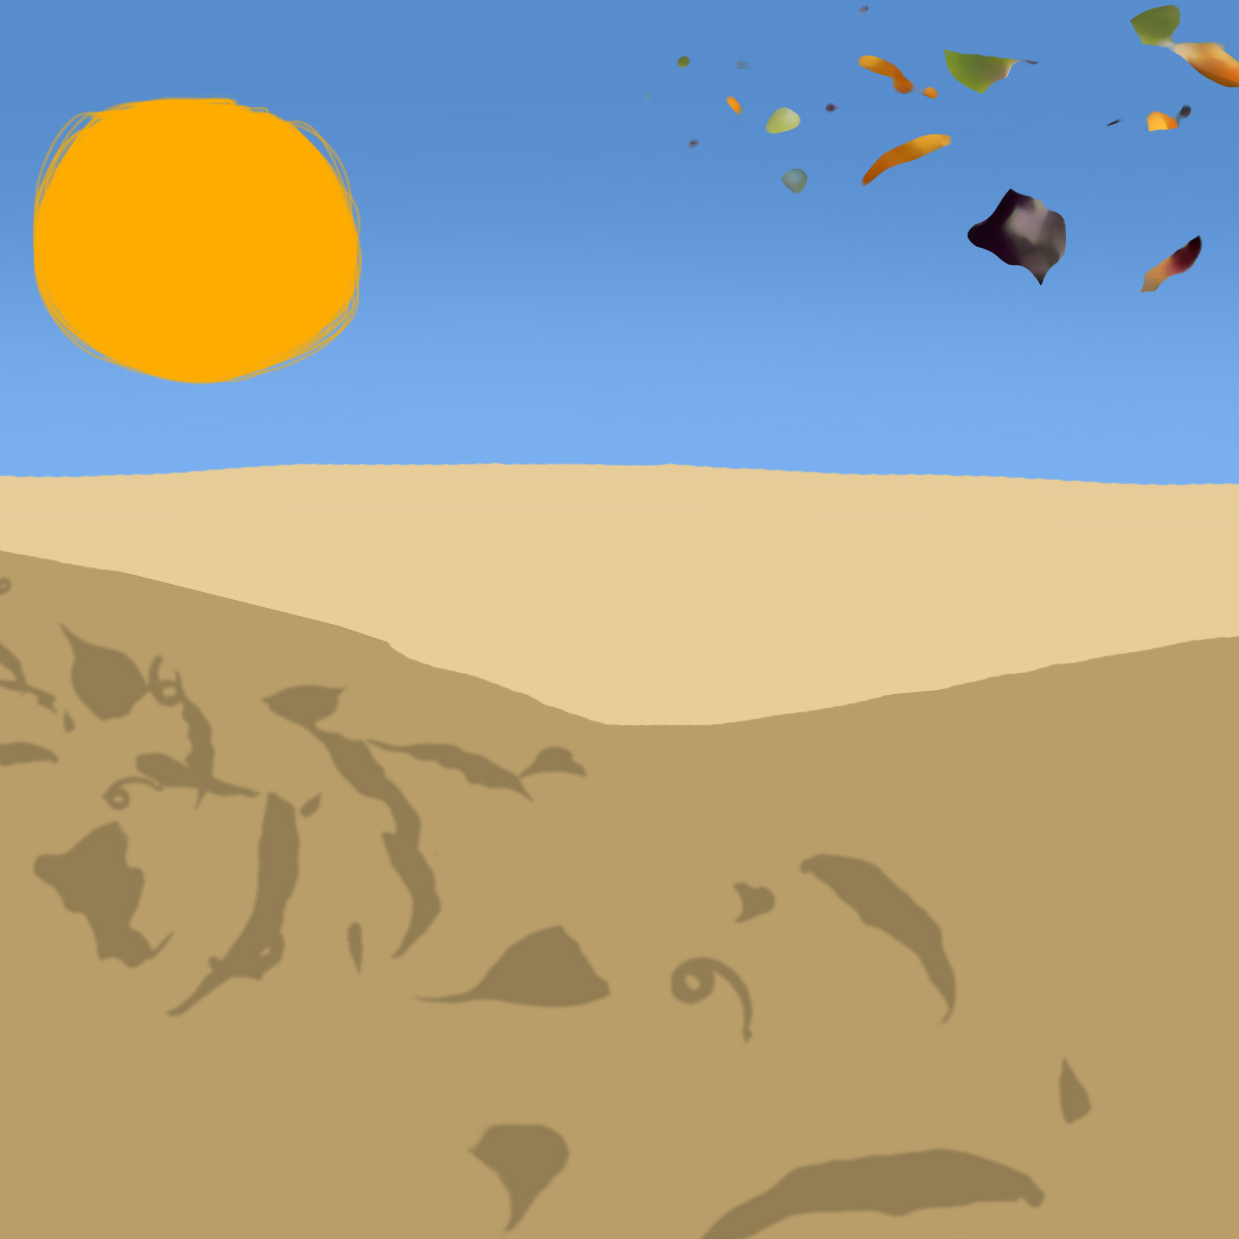 Leaves over desert.